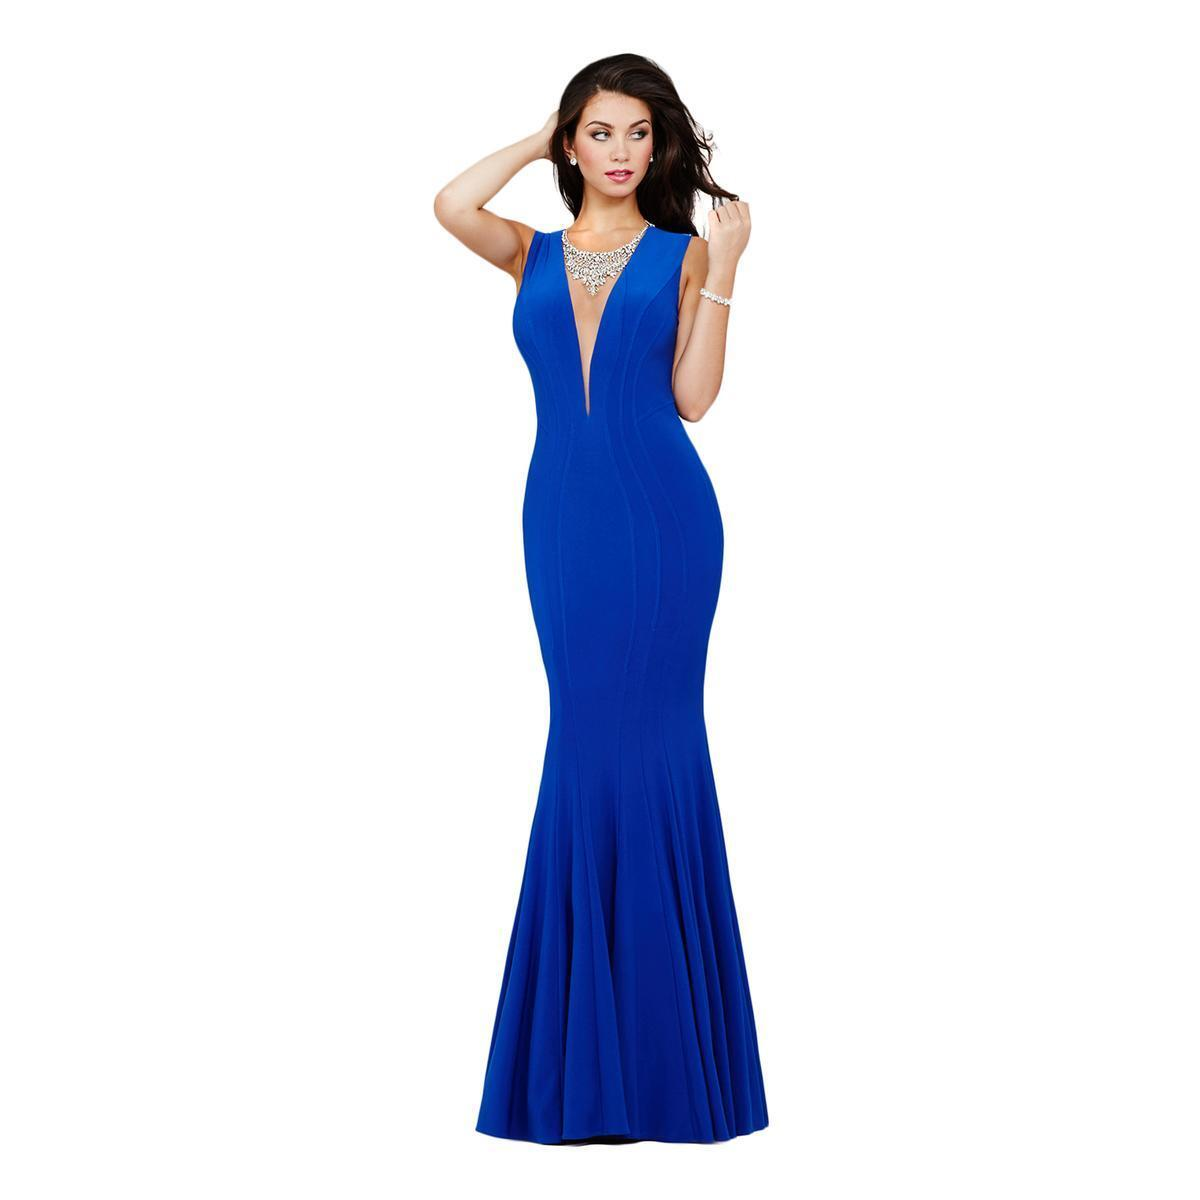 550 NWT ROYAL blueE JOVANI PROM PAGEANT FORMAL DRESS GOWN SIZE 4